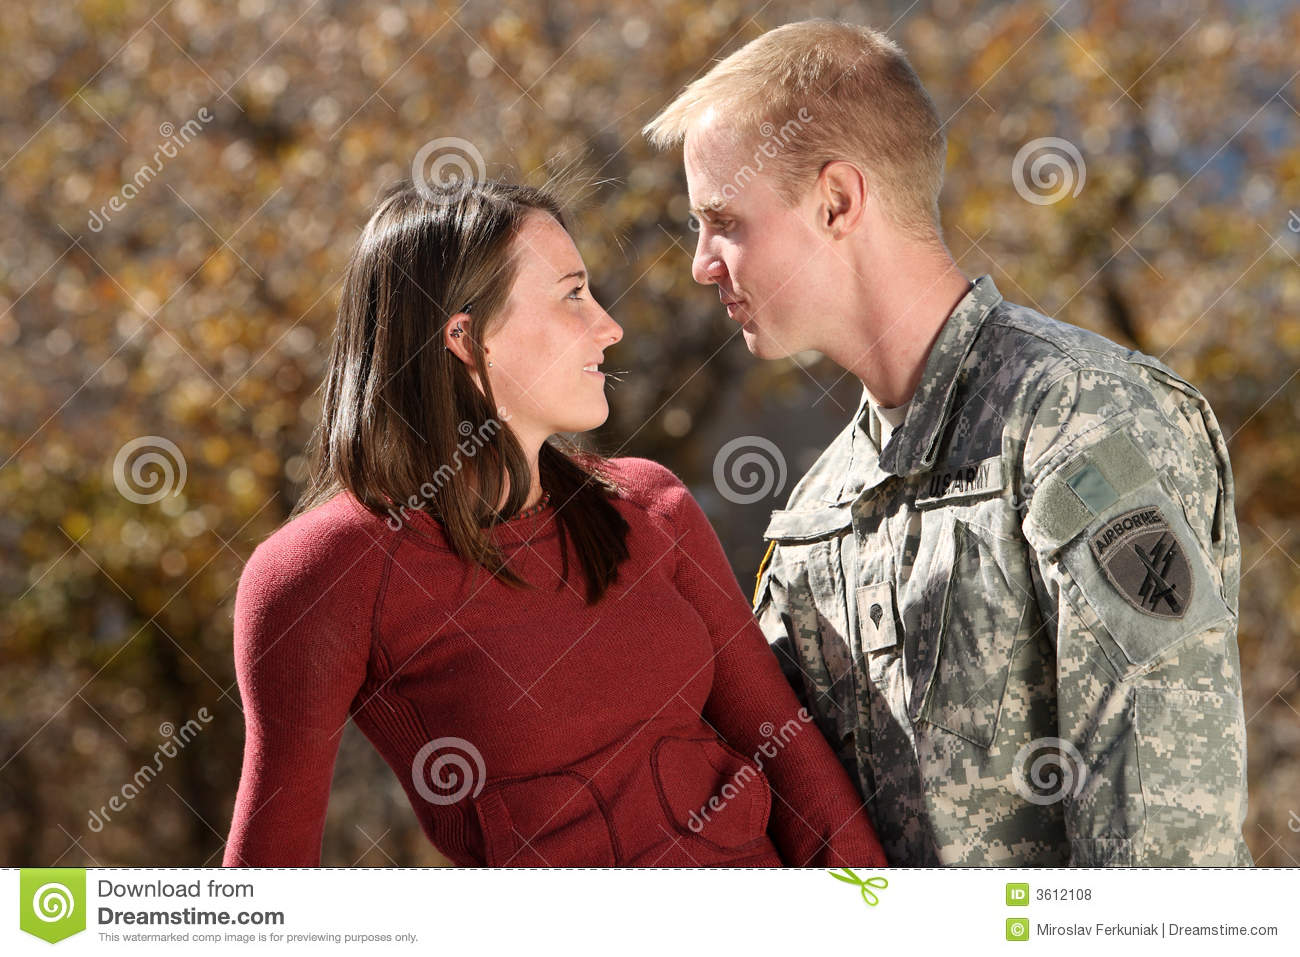 largest military dating site Militaryfriends is an online military dating service for military women seeking military men and military girls seeking military boys 100% free to join to date military male or military female for friendship, marriage or more.